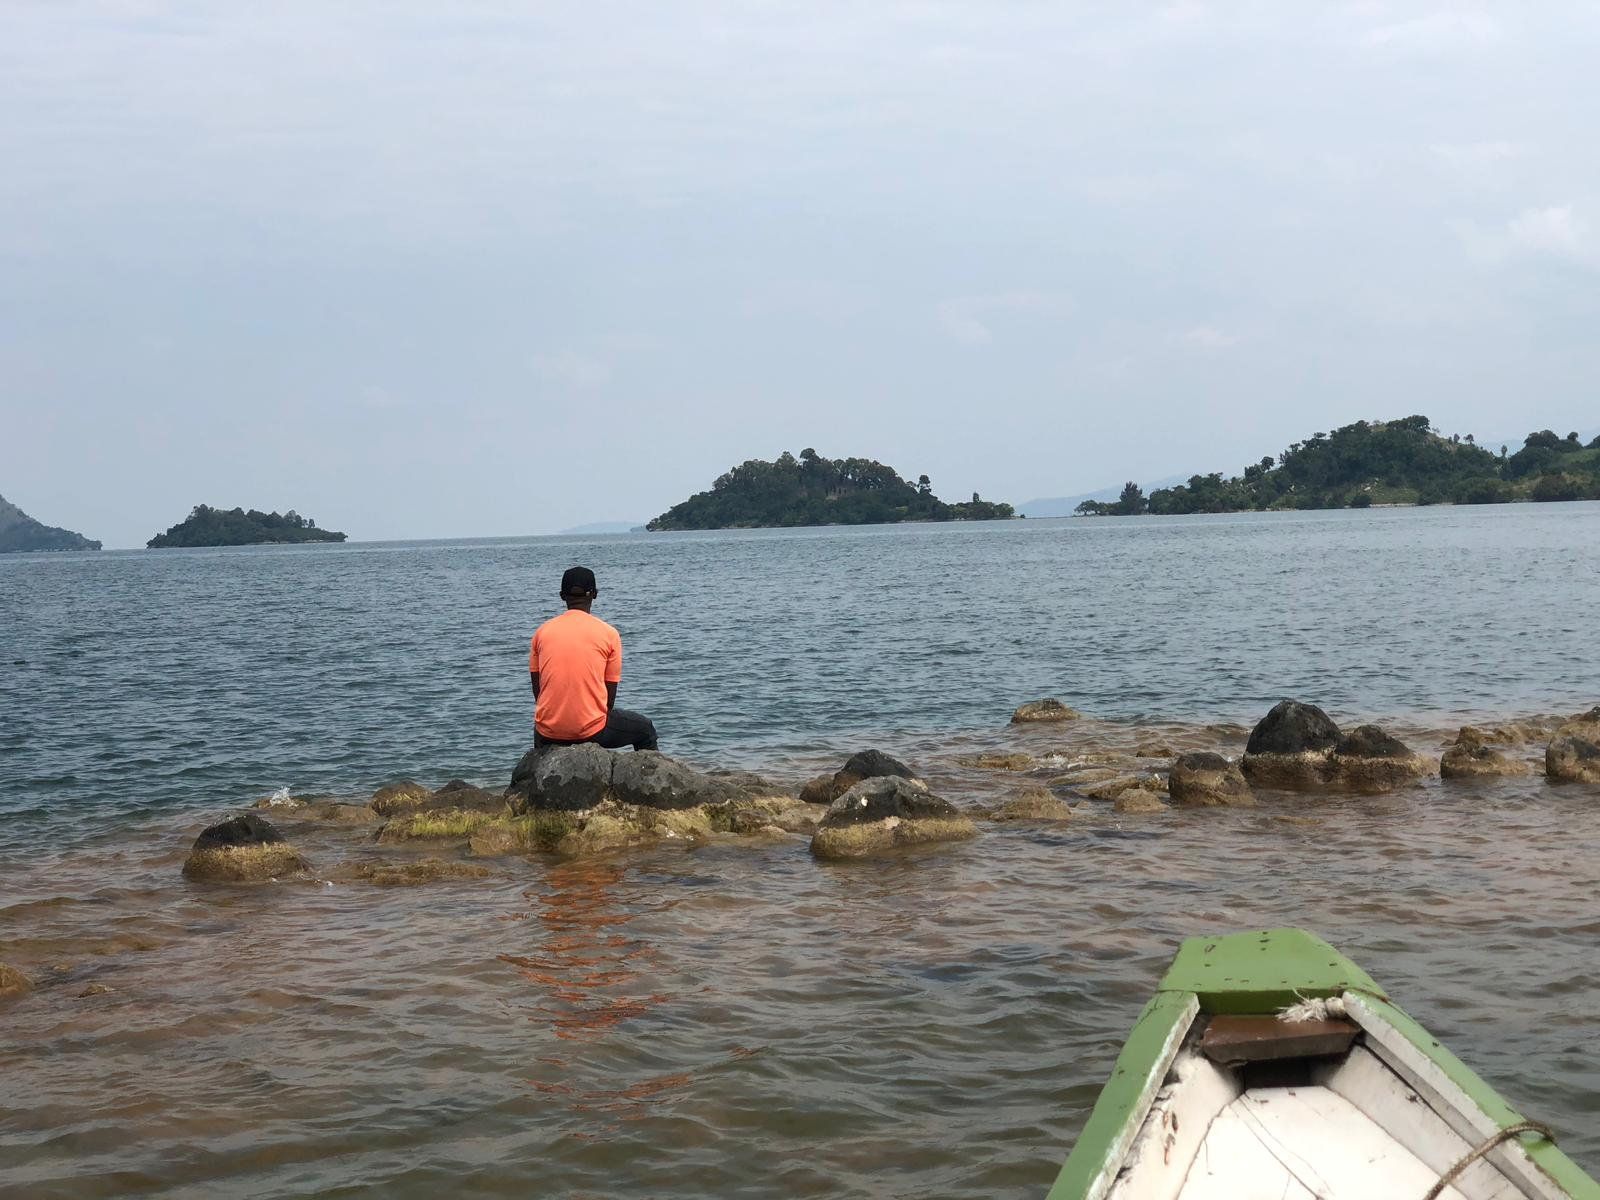 Lake Kivu's Picturesque Islands